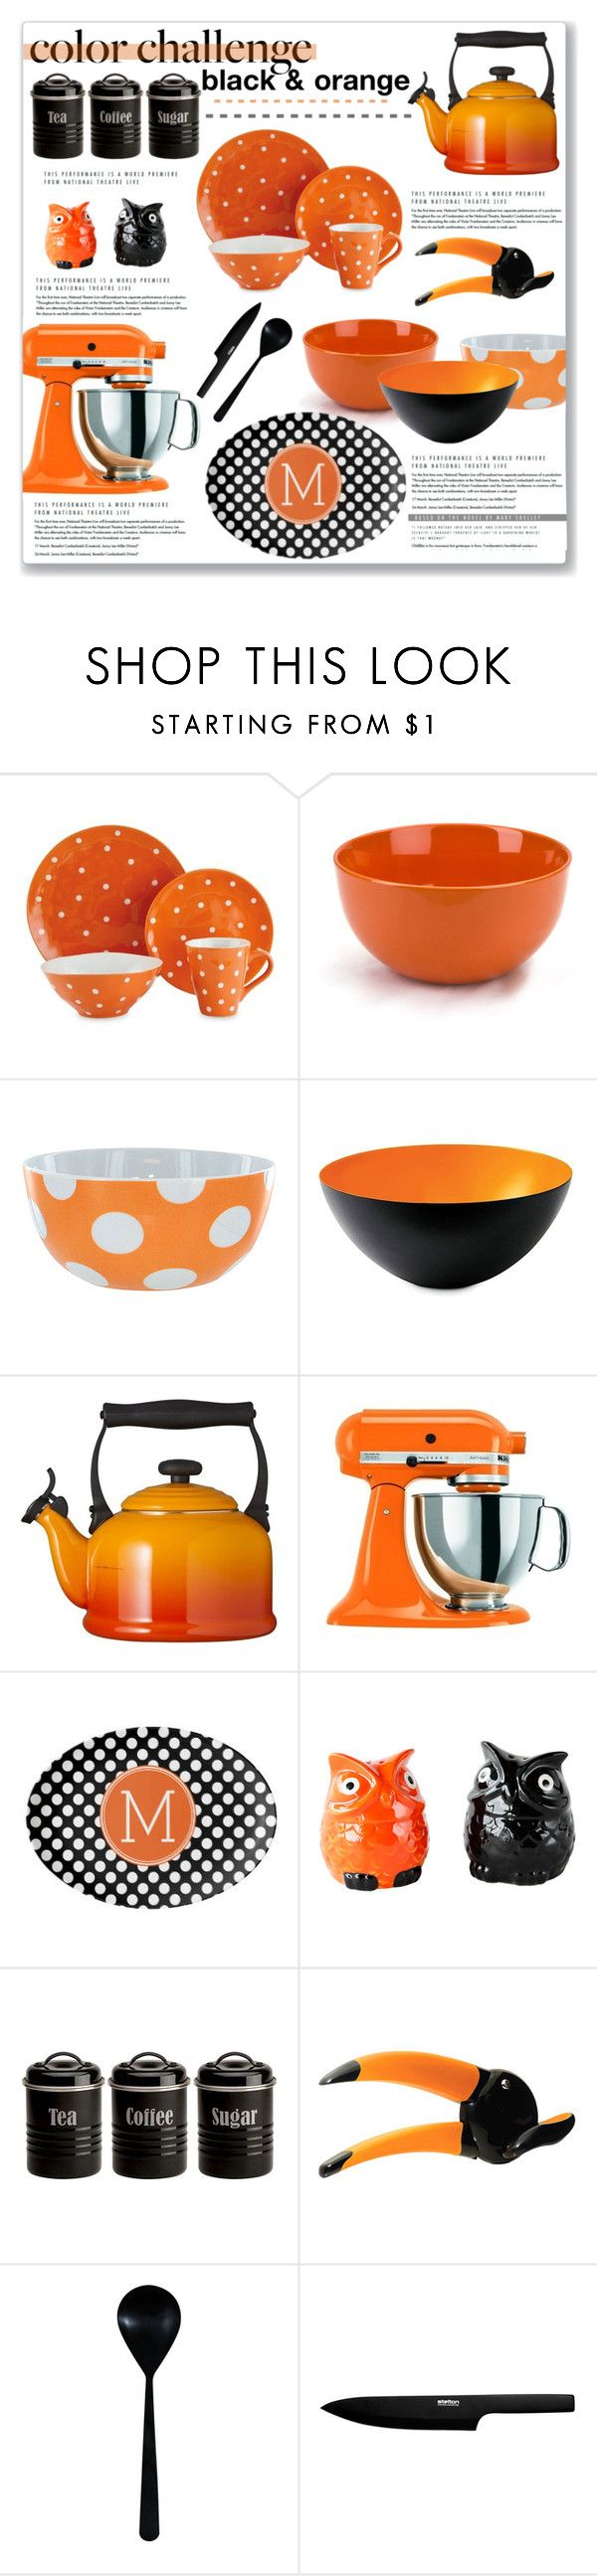 """Black & Orange Kitchen Accessories"" by kellylynne68 ❤ liked on Polyvore featuring interior, interiors, interior design, home, home decor, interior decorating, Le Creuset, KitchenAid, Dot & Bo and Typhoon"